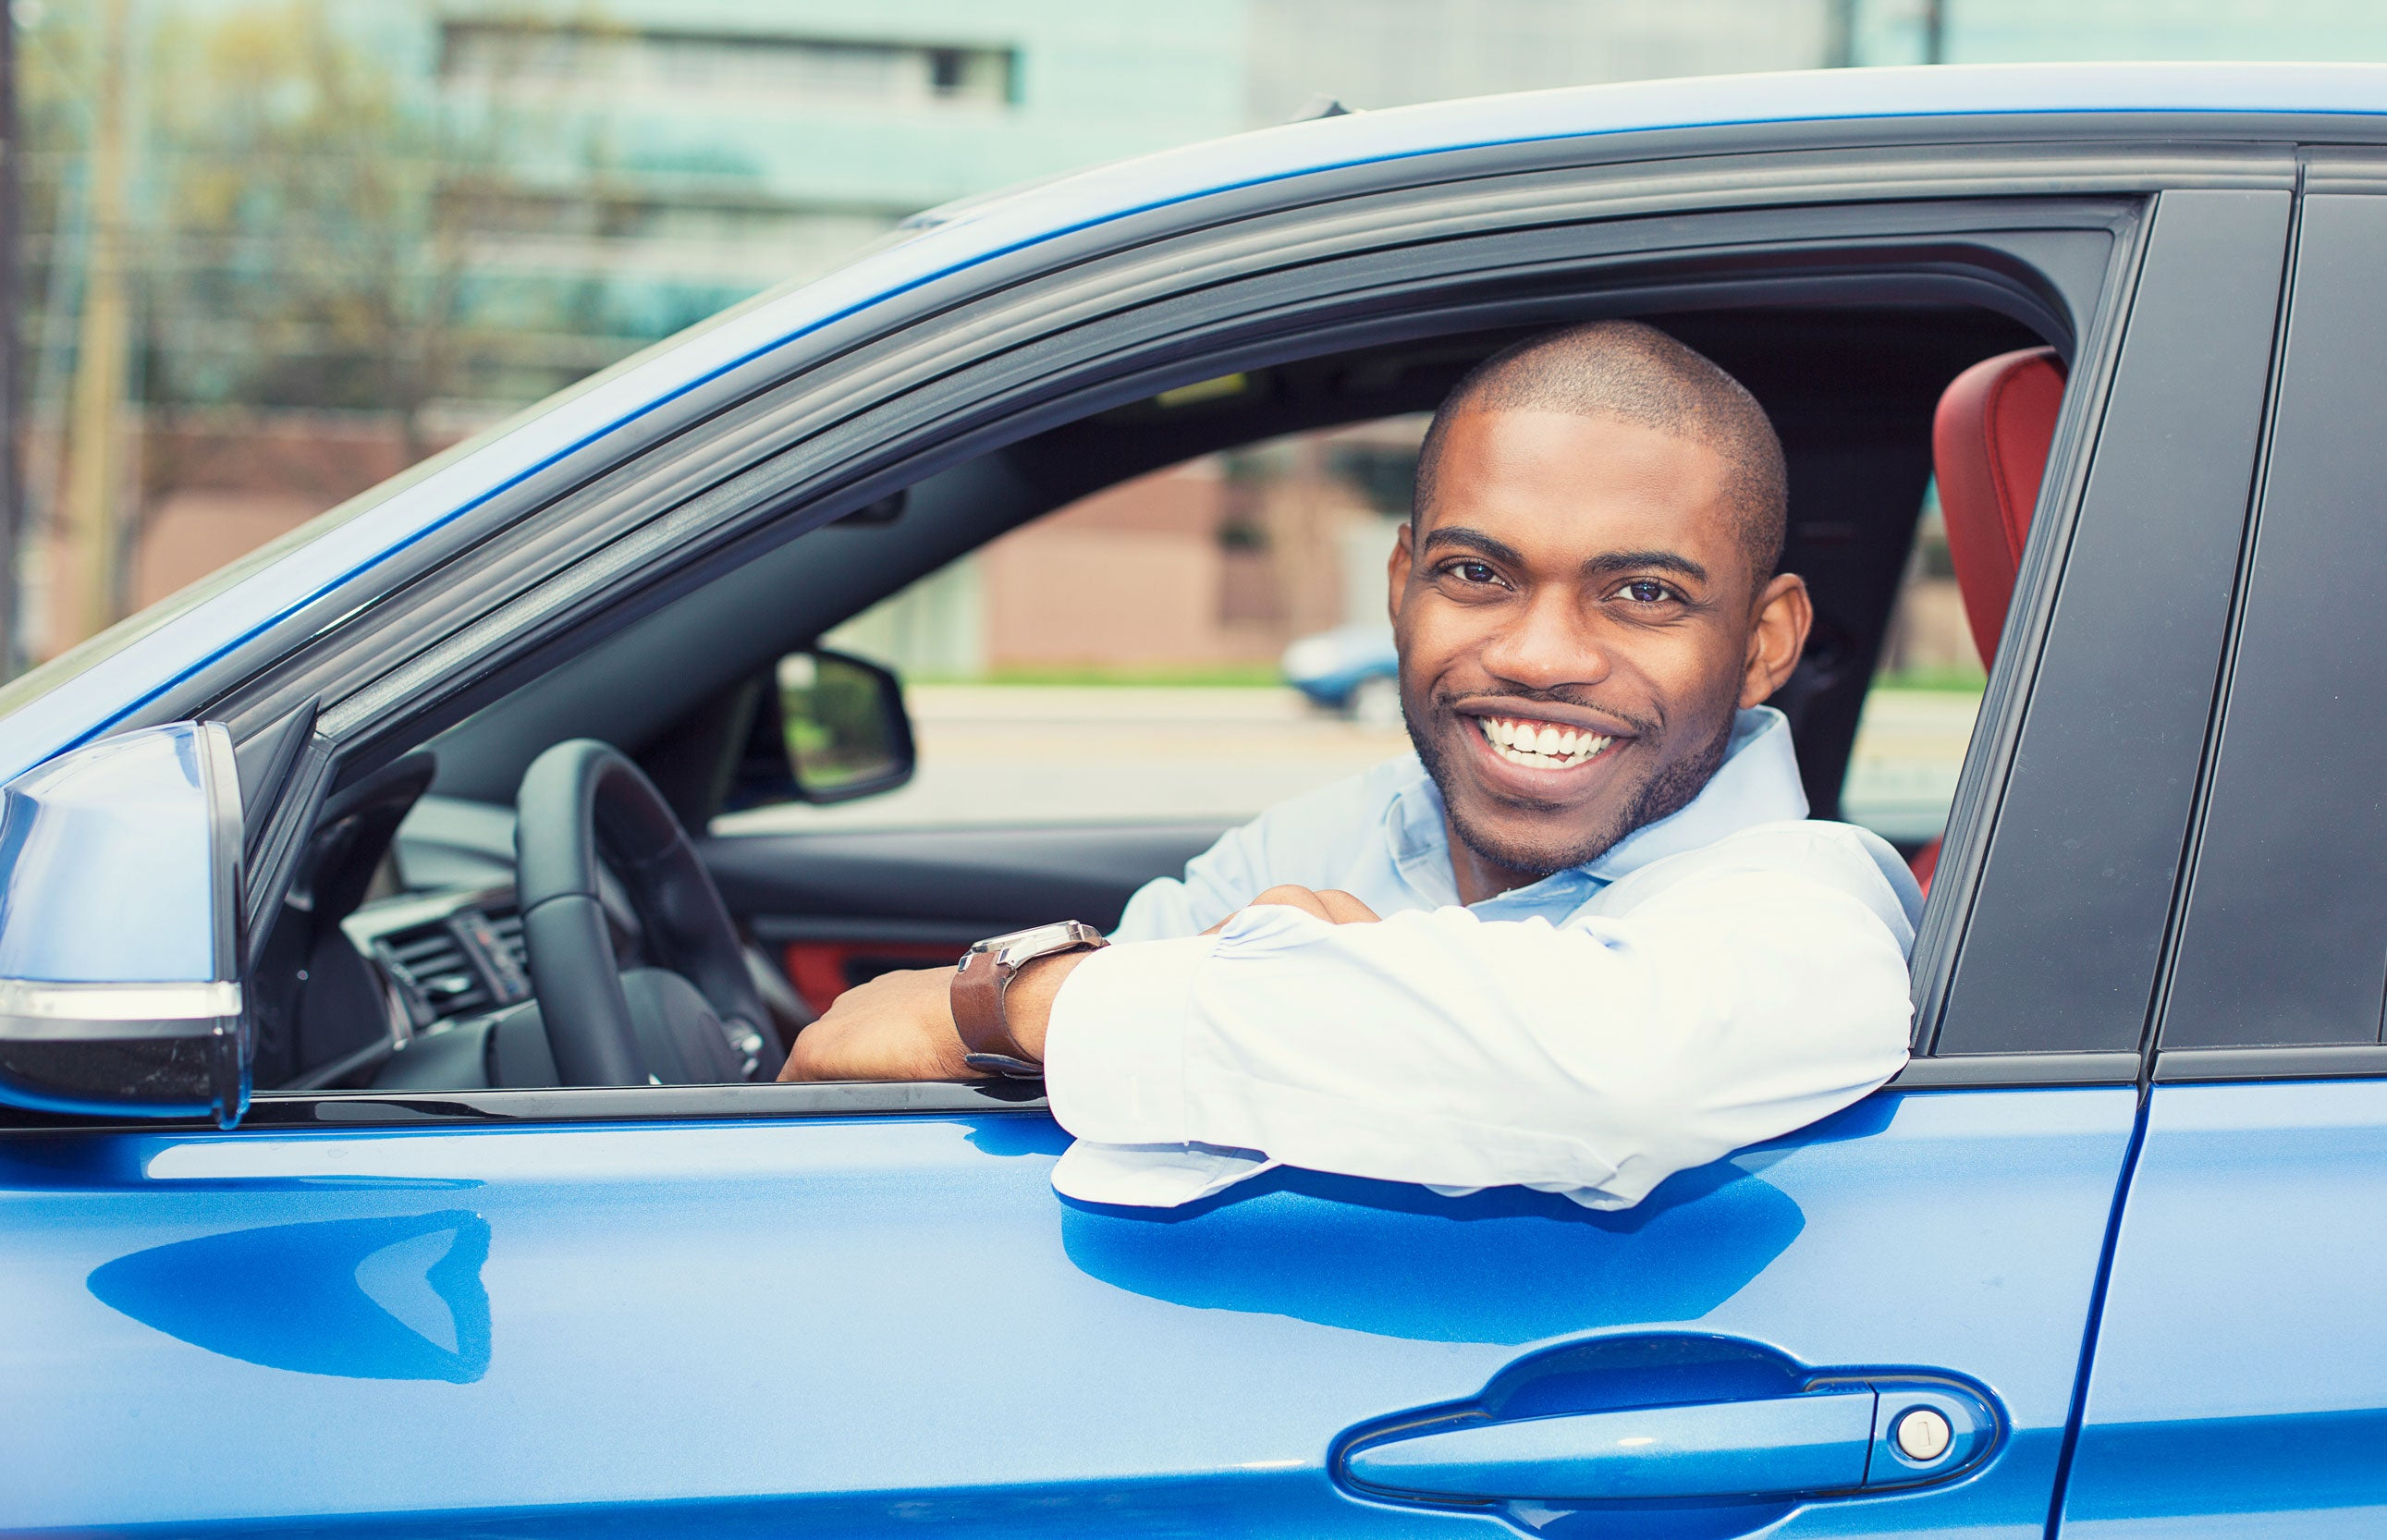 Why You Should Buy A Hire Car: Should I Buy A Used Rental Car?